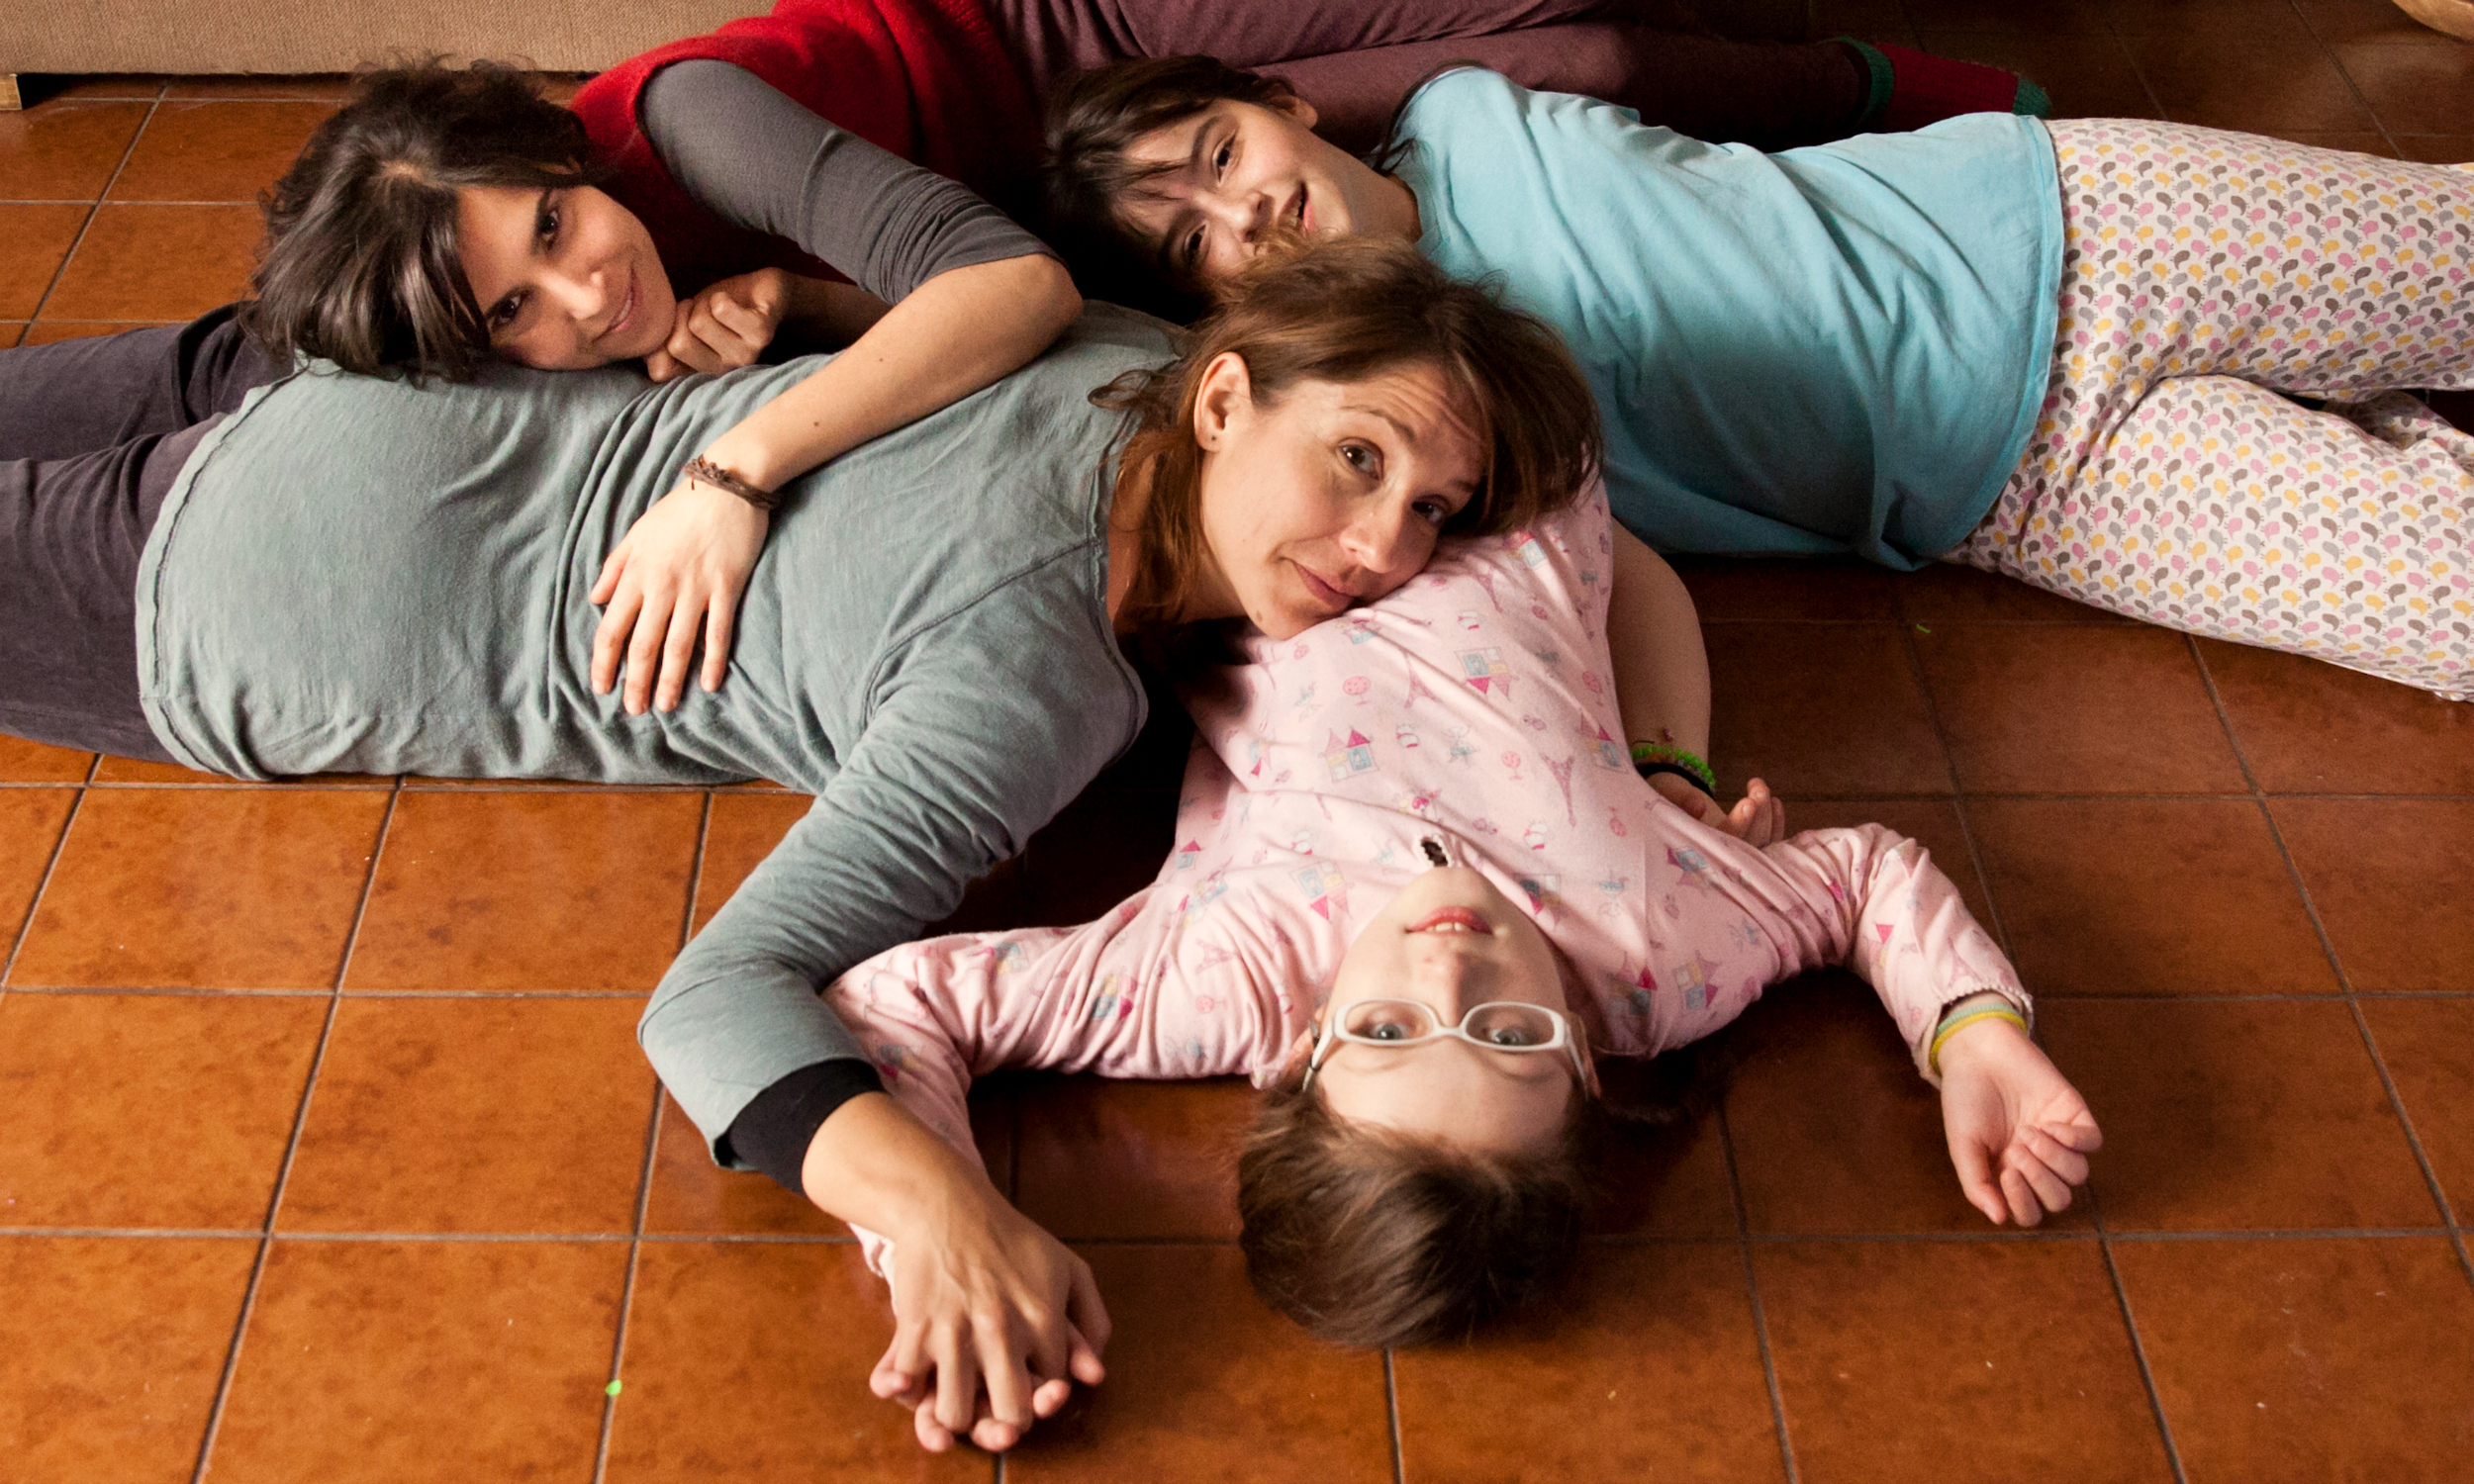 Actresses from left to right: Agustina Muñoz, Mariana Loyola, Julia Lübbert, Emilia Ossandón